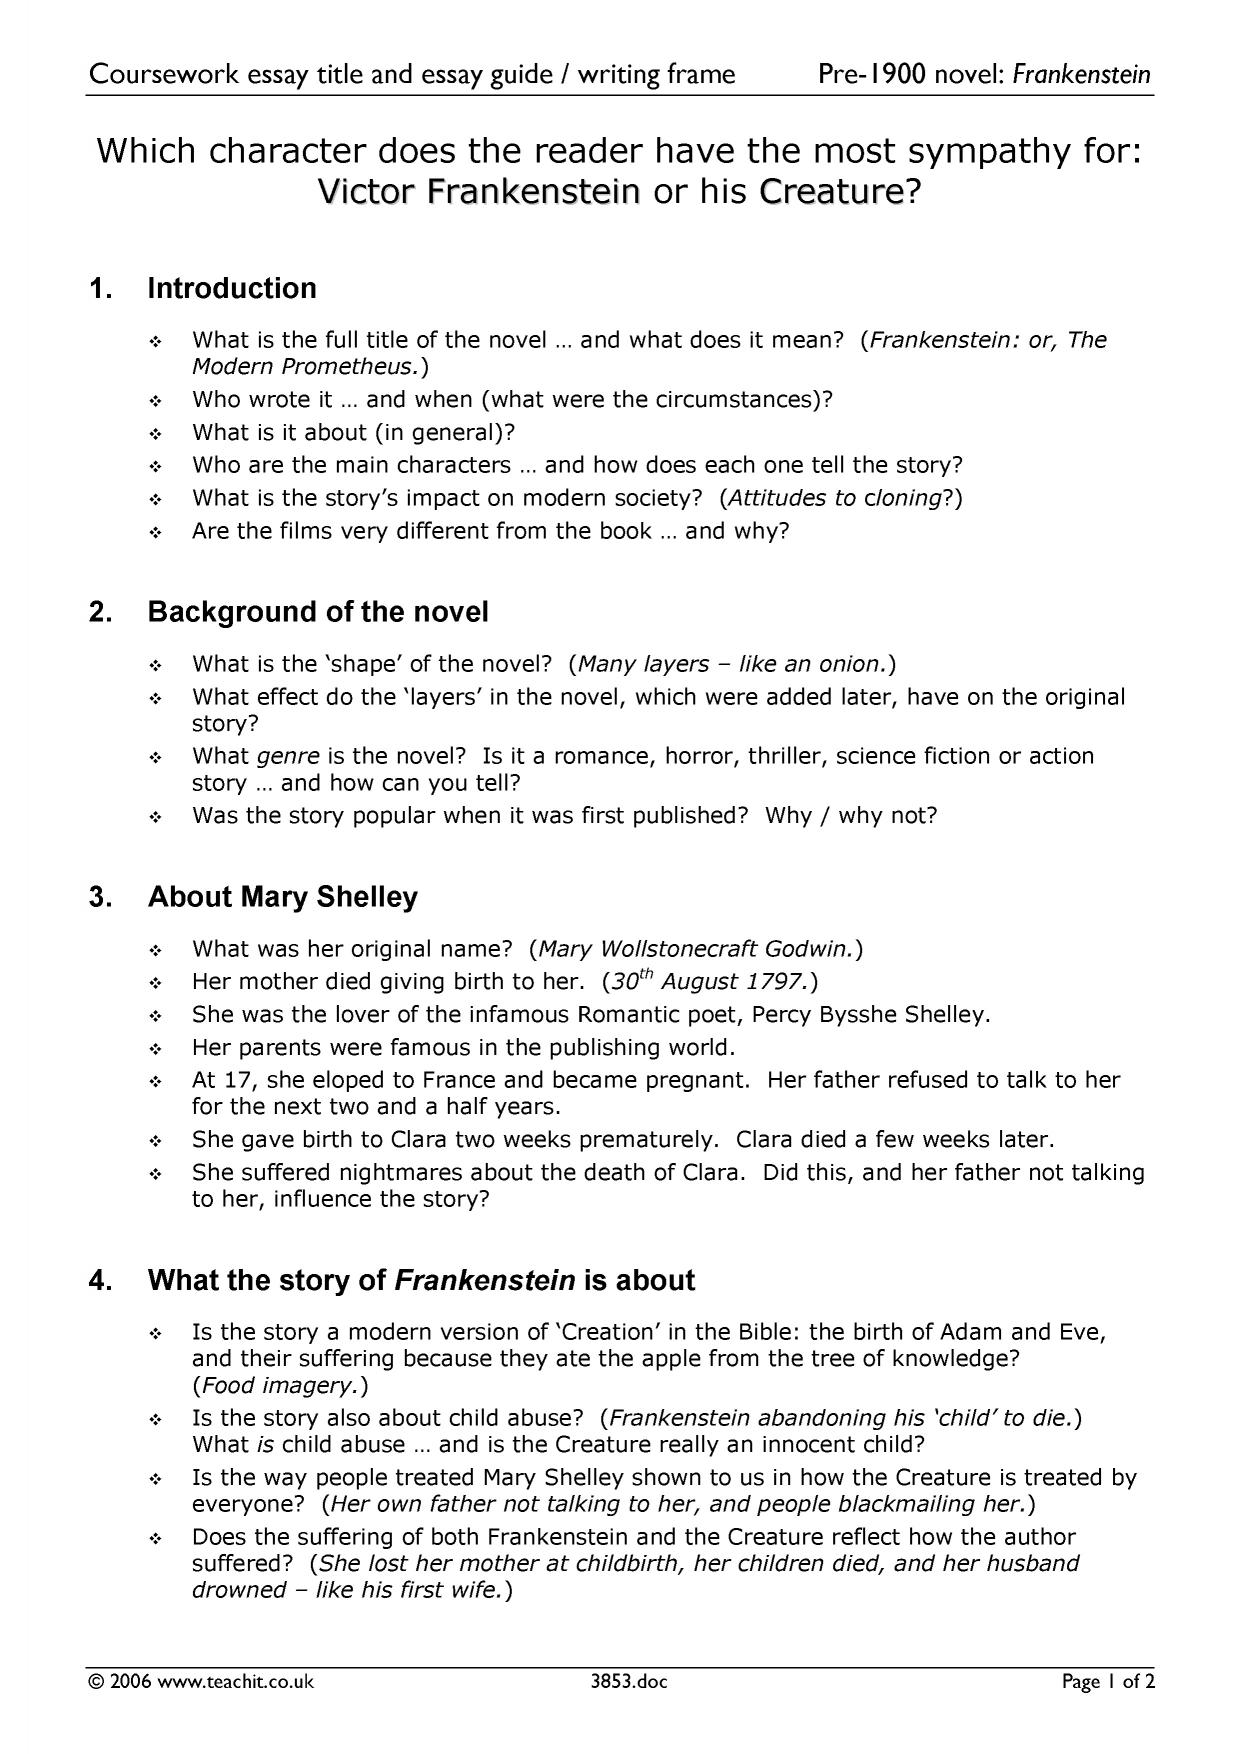 essay title and writing frame guide frankenstein by mary shelley  resource thumbnail